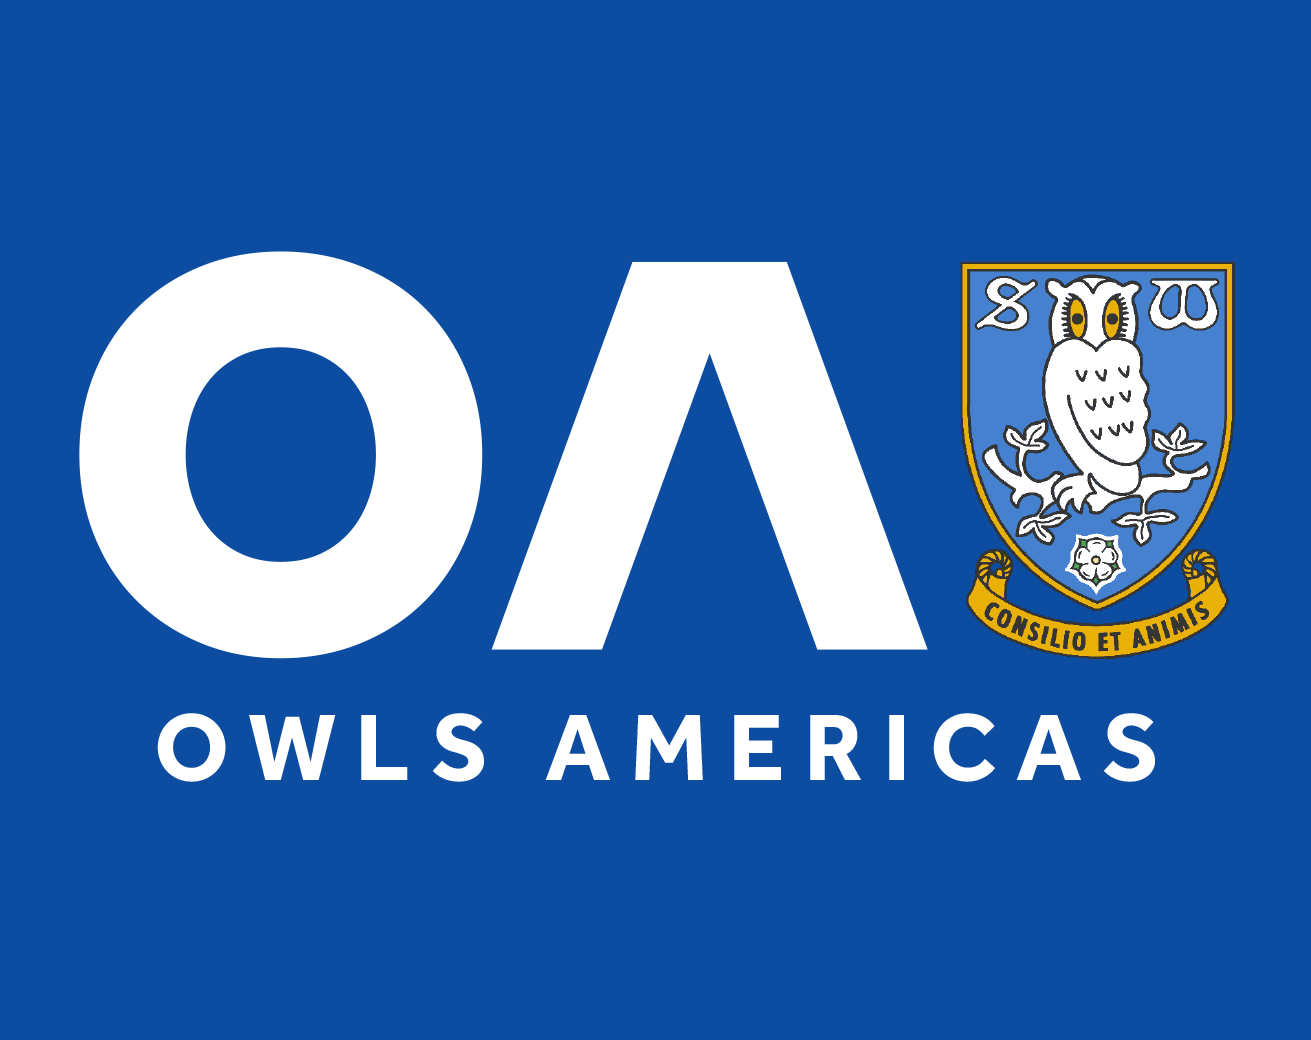 Visit Owls Americas for more Supporter Groups